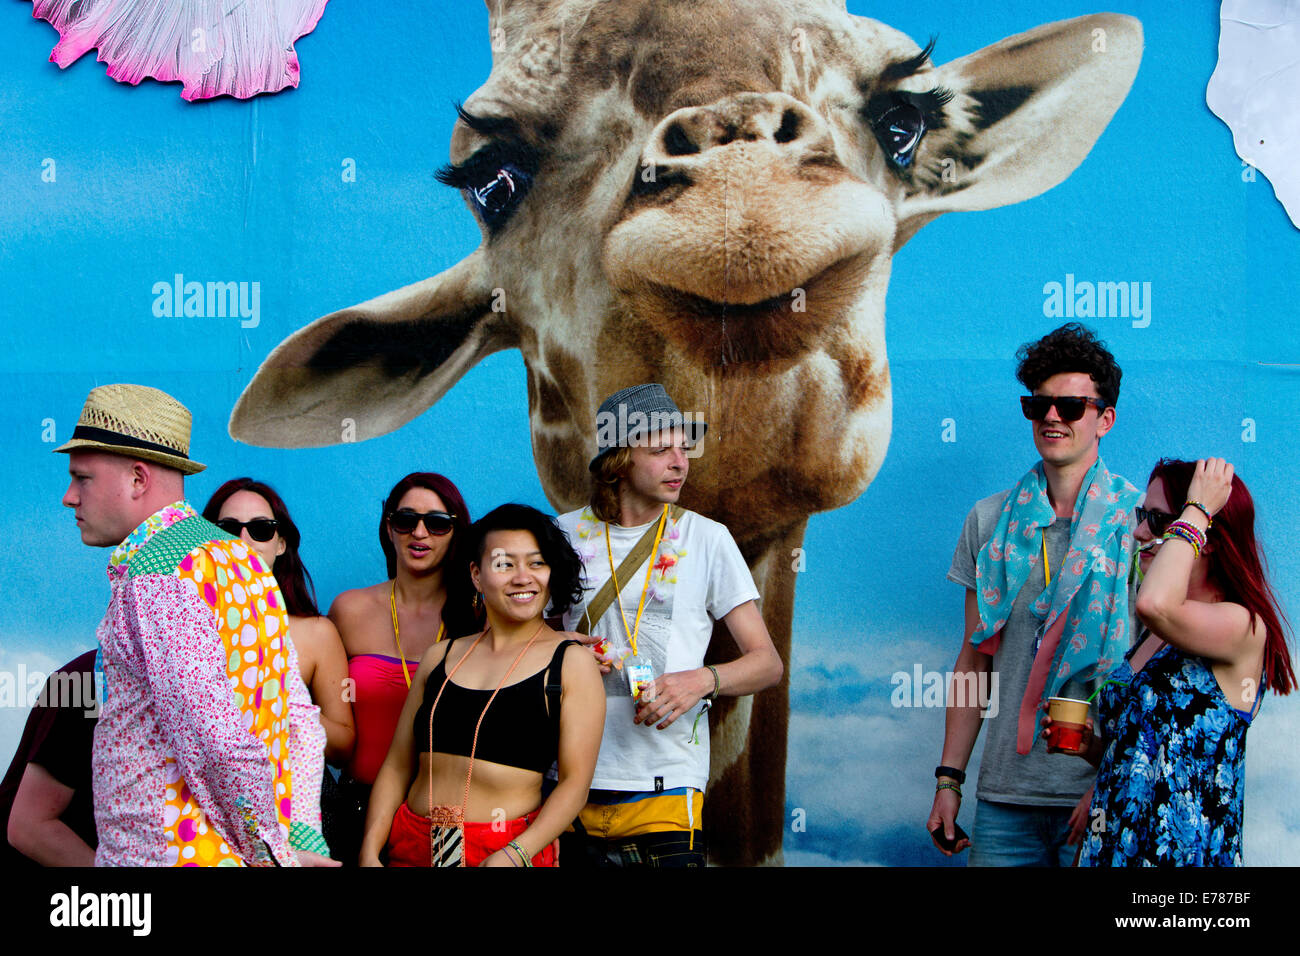 Glastonbury Festival 2014. group being photographed with a giraffe on the evolving graphic walls by Link Leisure - Stock Image